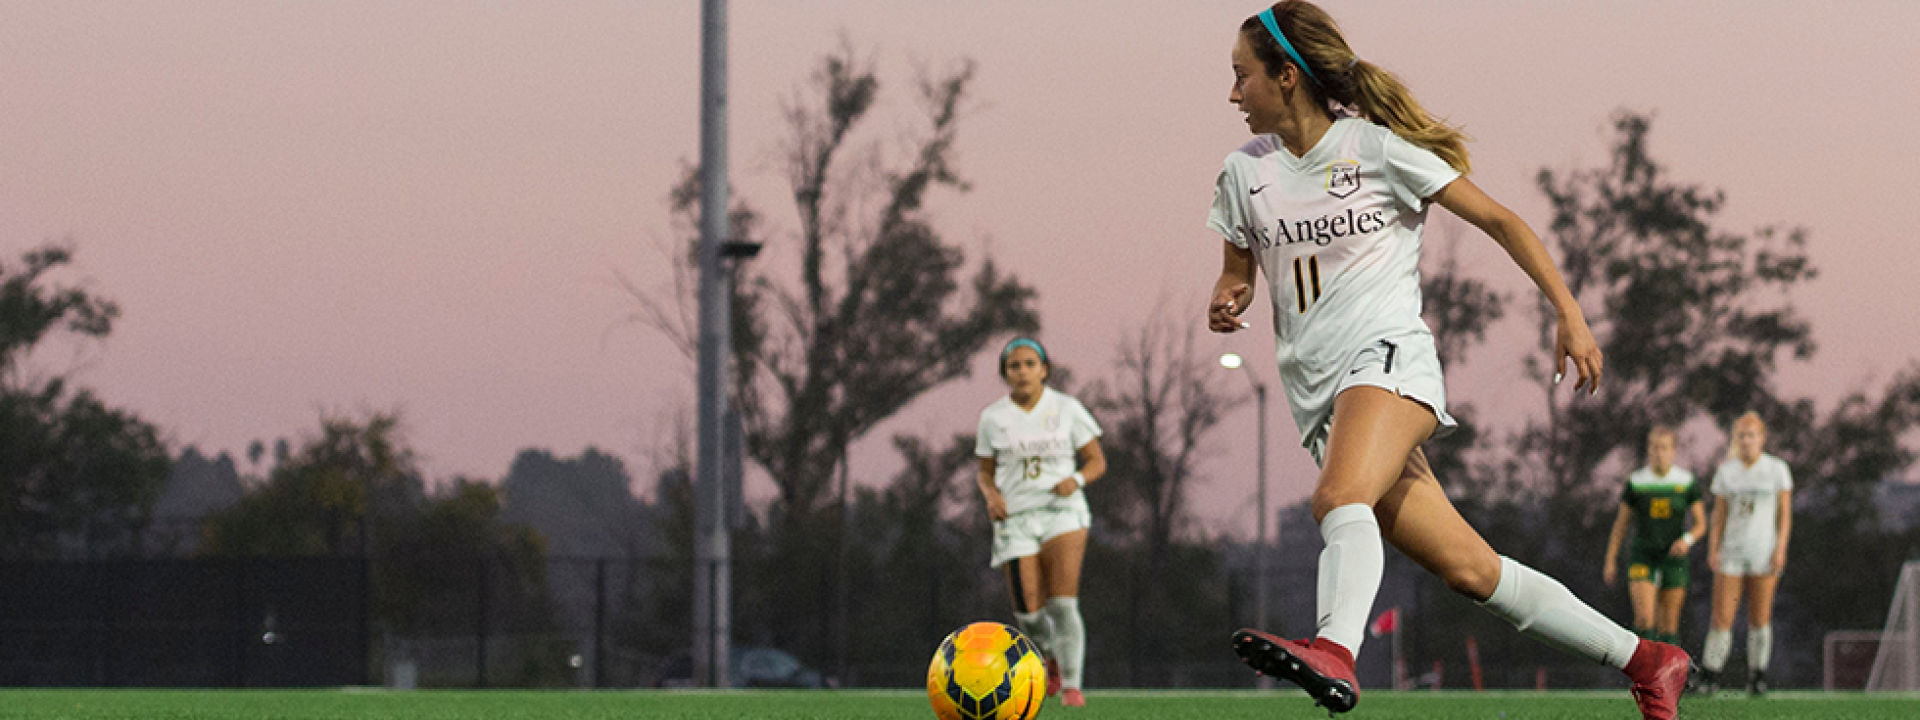 Image of a member of the  women's soccer team on the pitch at dusk, pink sky behind her.